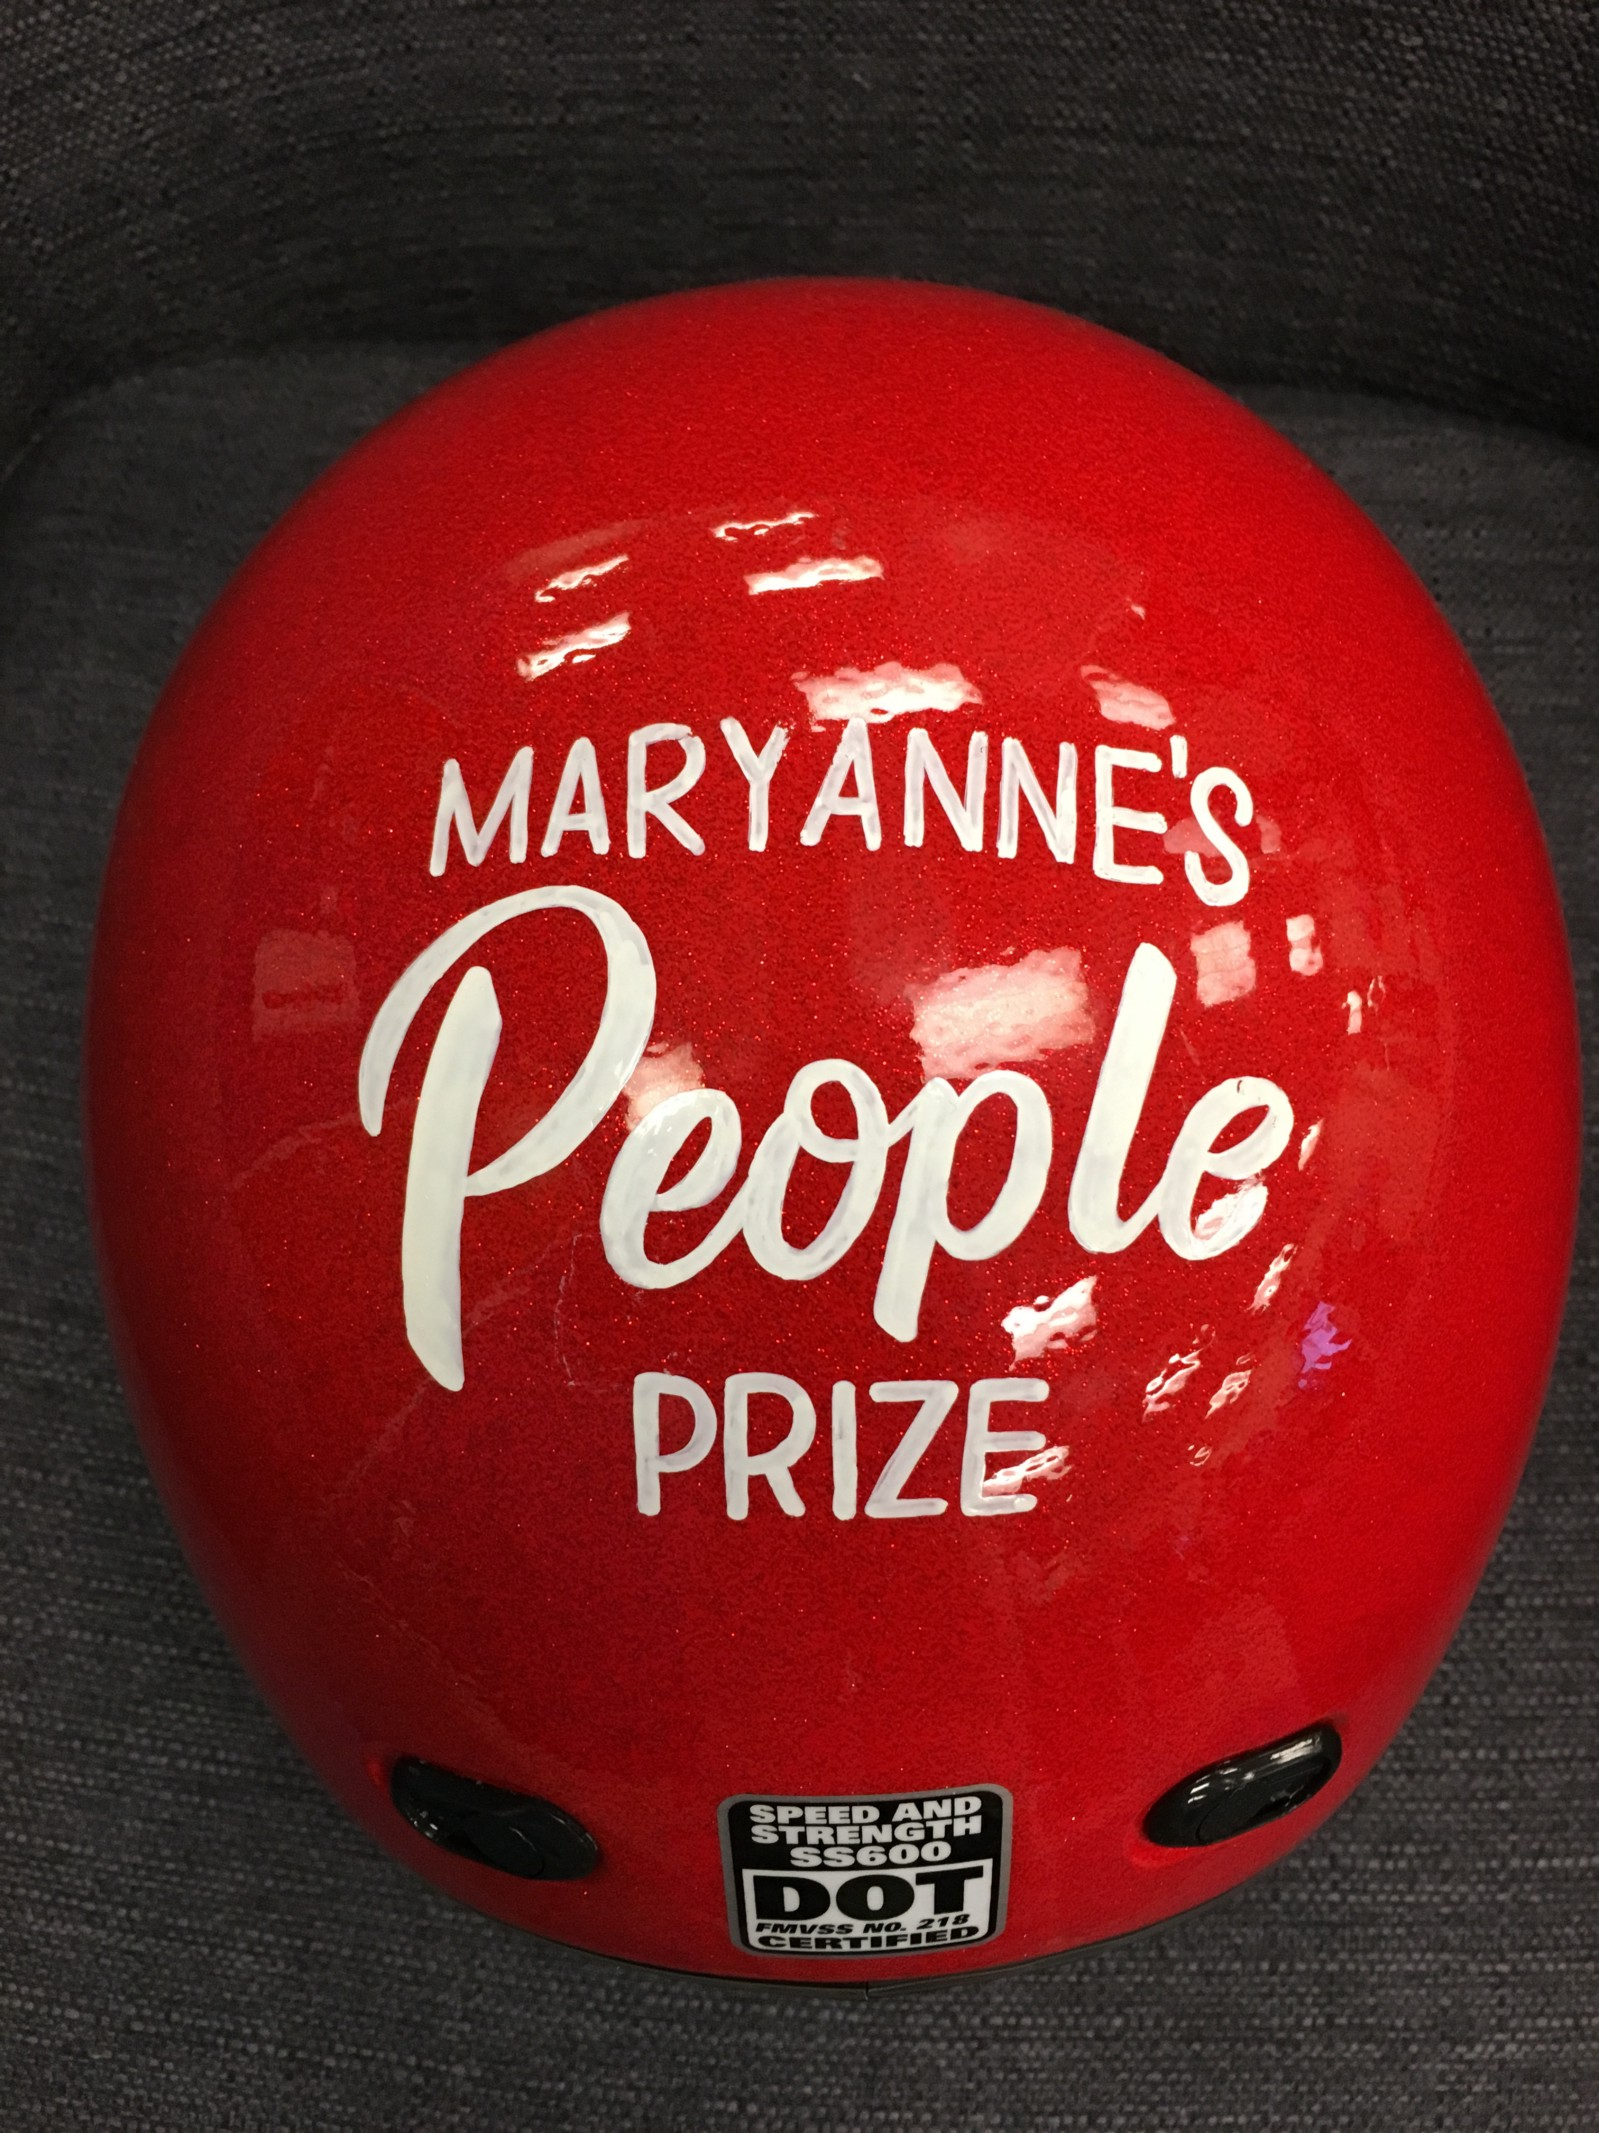 It's not a bowling ball. This prize is a fully functioning helmet.